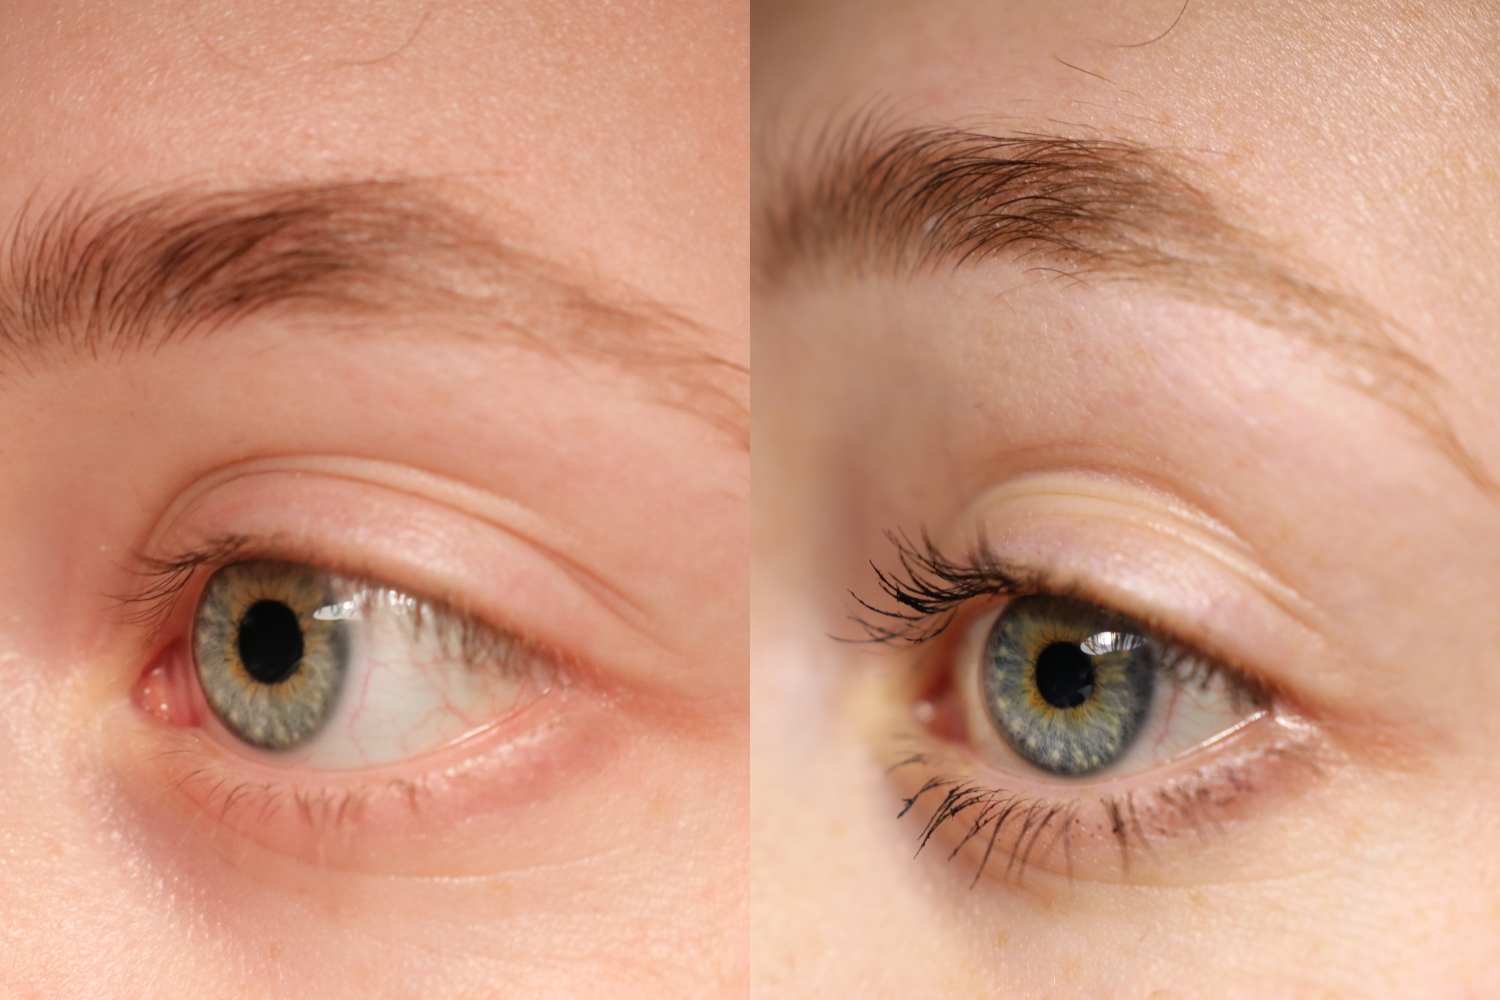 This picture is a collage of two pictures, both close ups of Sanne's eye. One shows Sannes eye and lashes without the mascara and the other shows with the mascara.